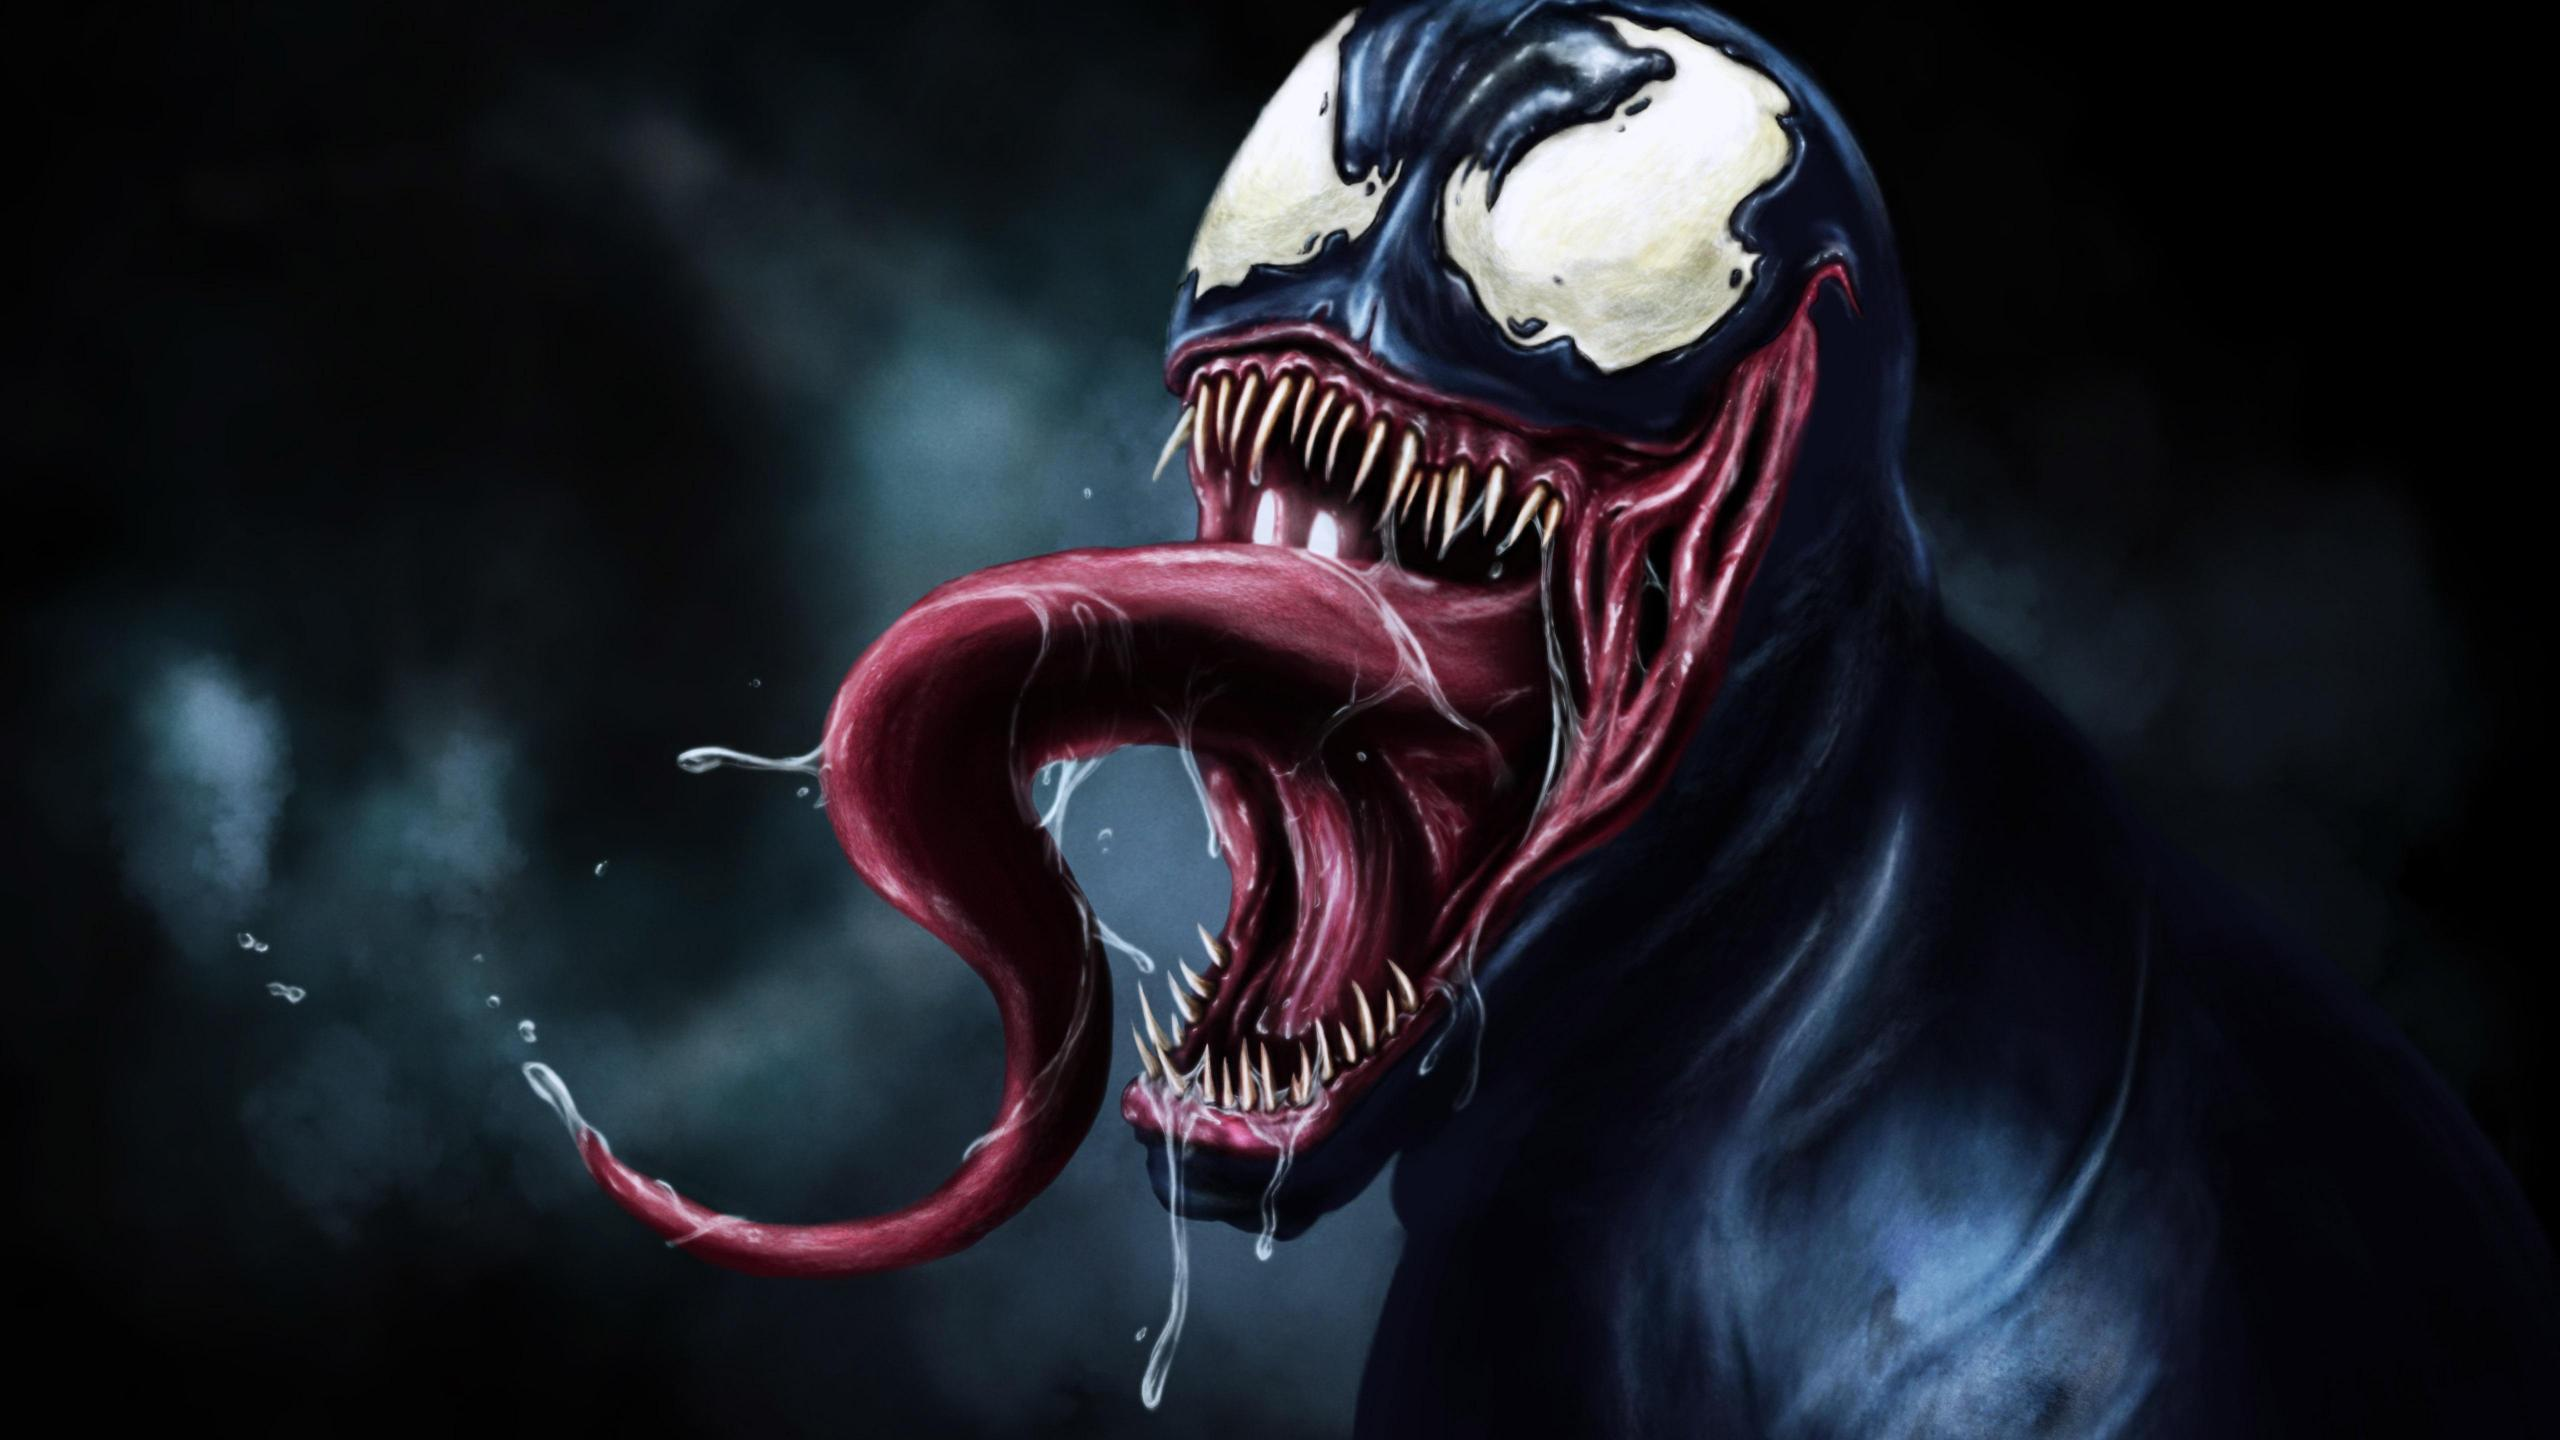 26 Venom Hd Wallpapers On Wallpapersafari